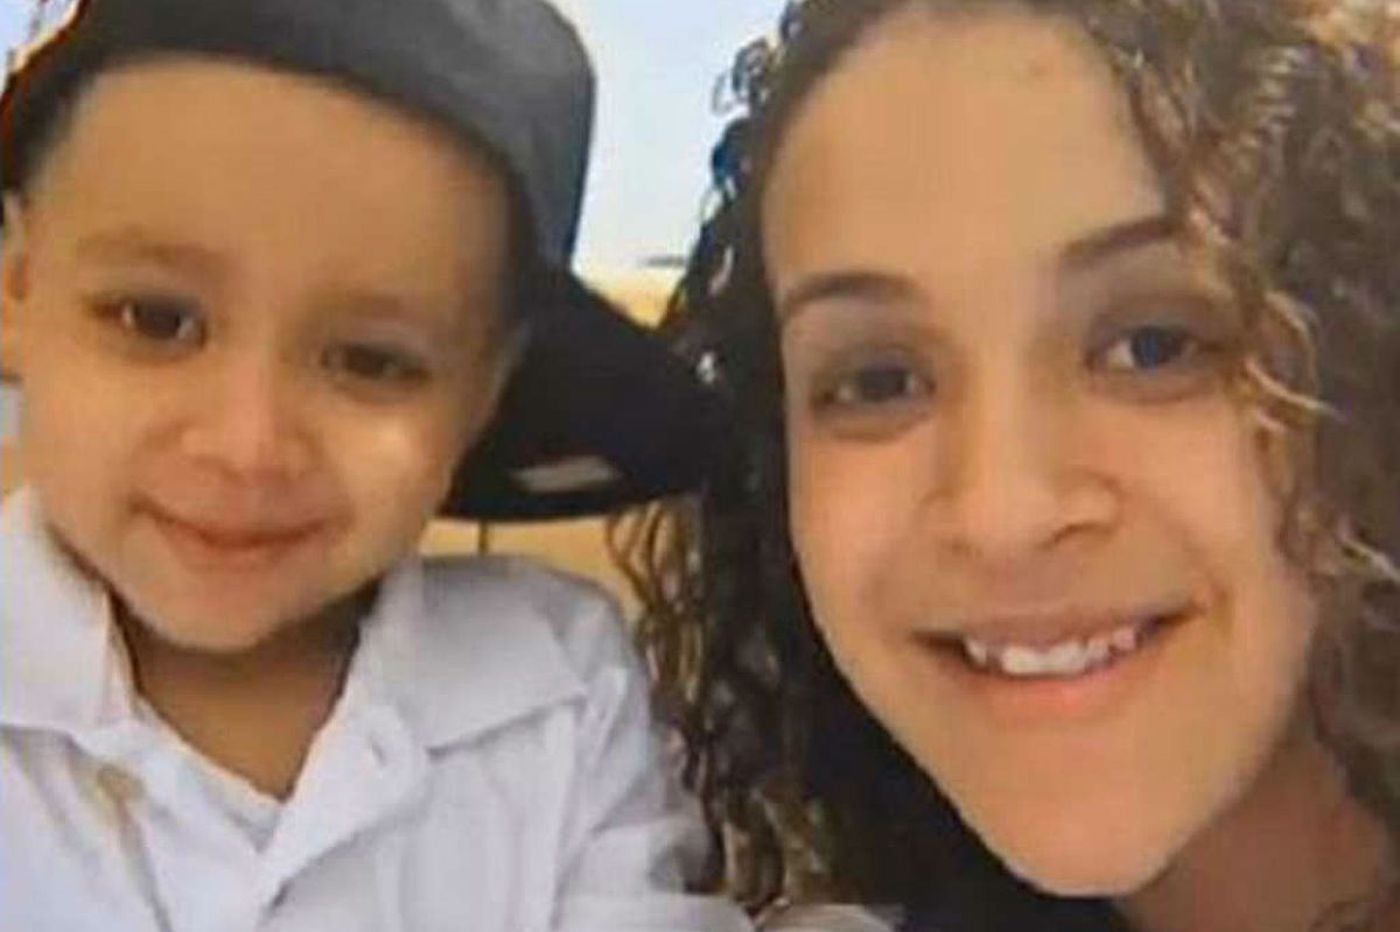 Mom sues driver, car owners in crash that killed 2-year-old son